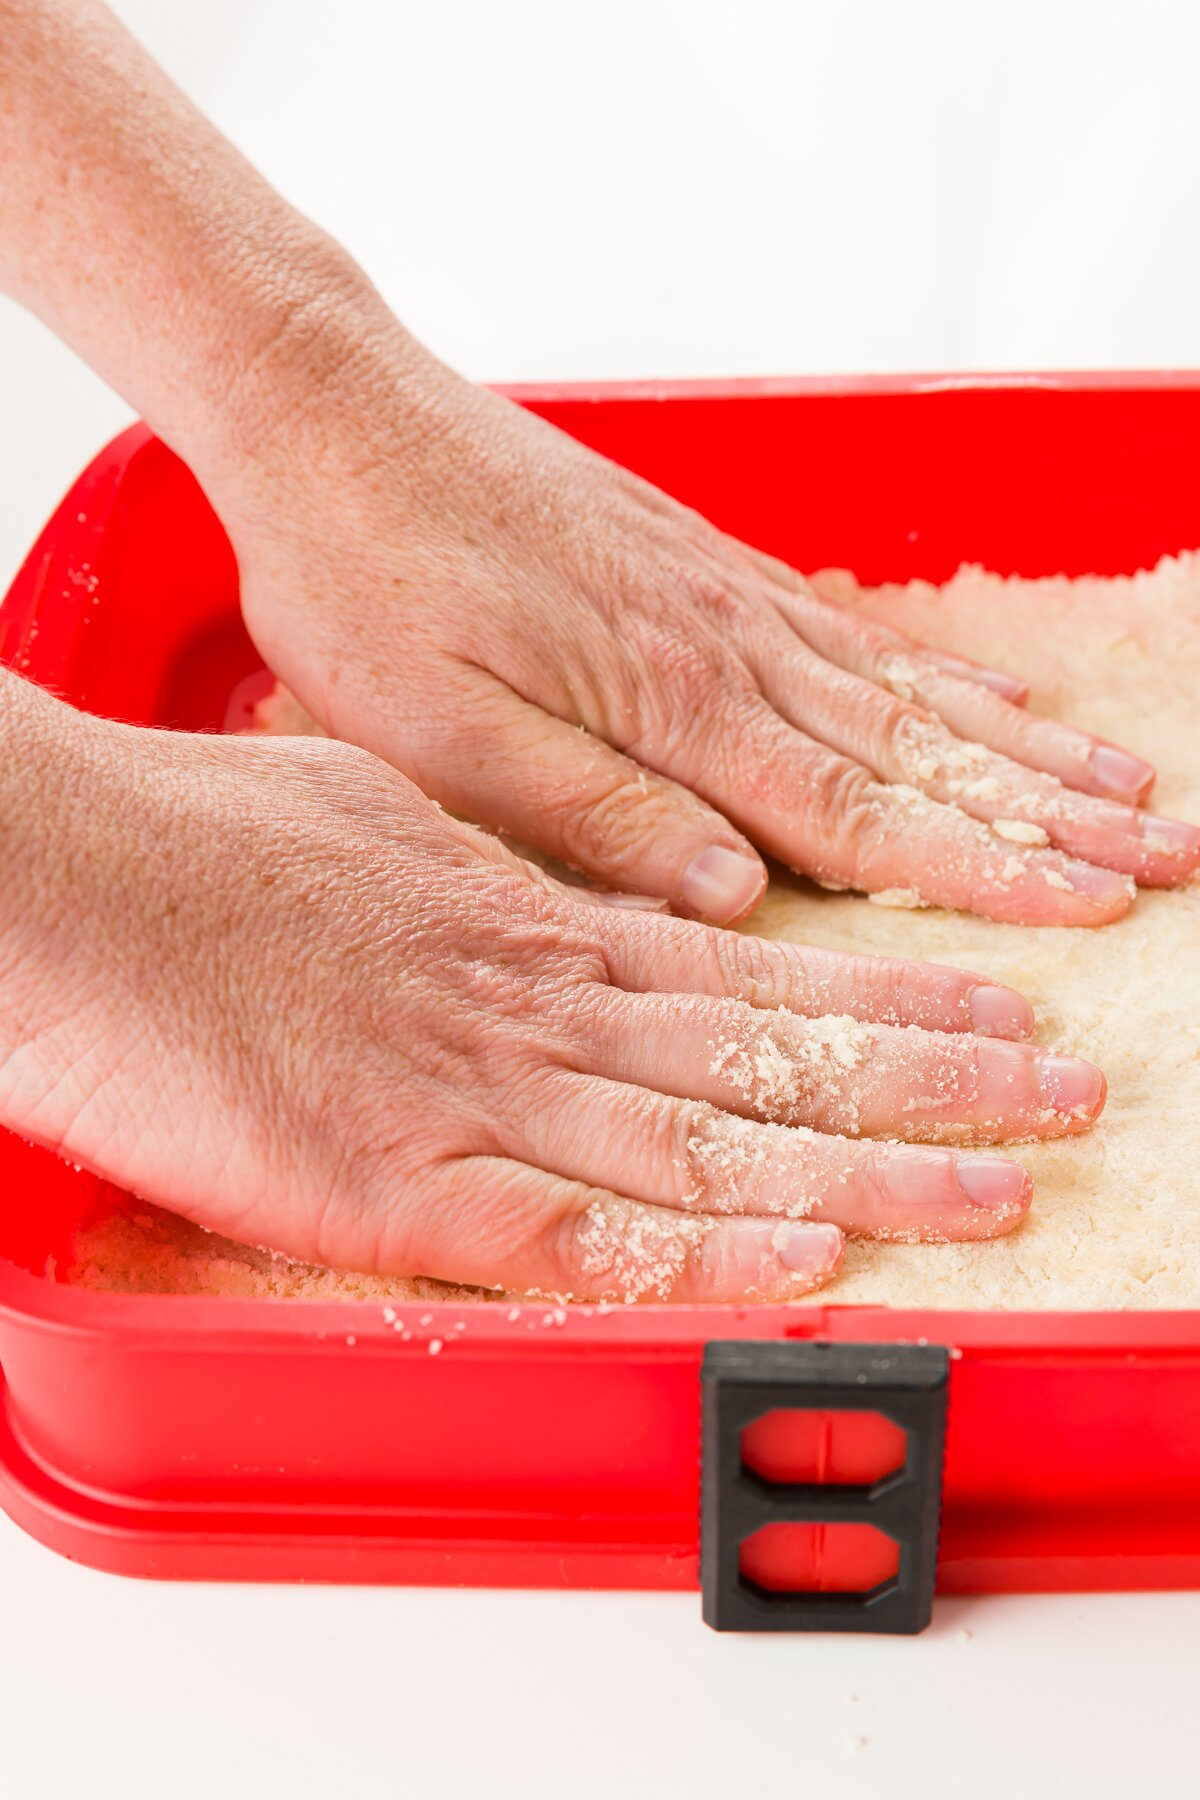 Pressing crust into a red baking pan